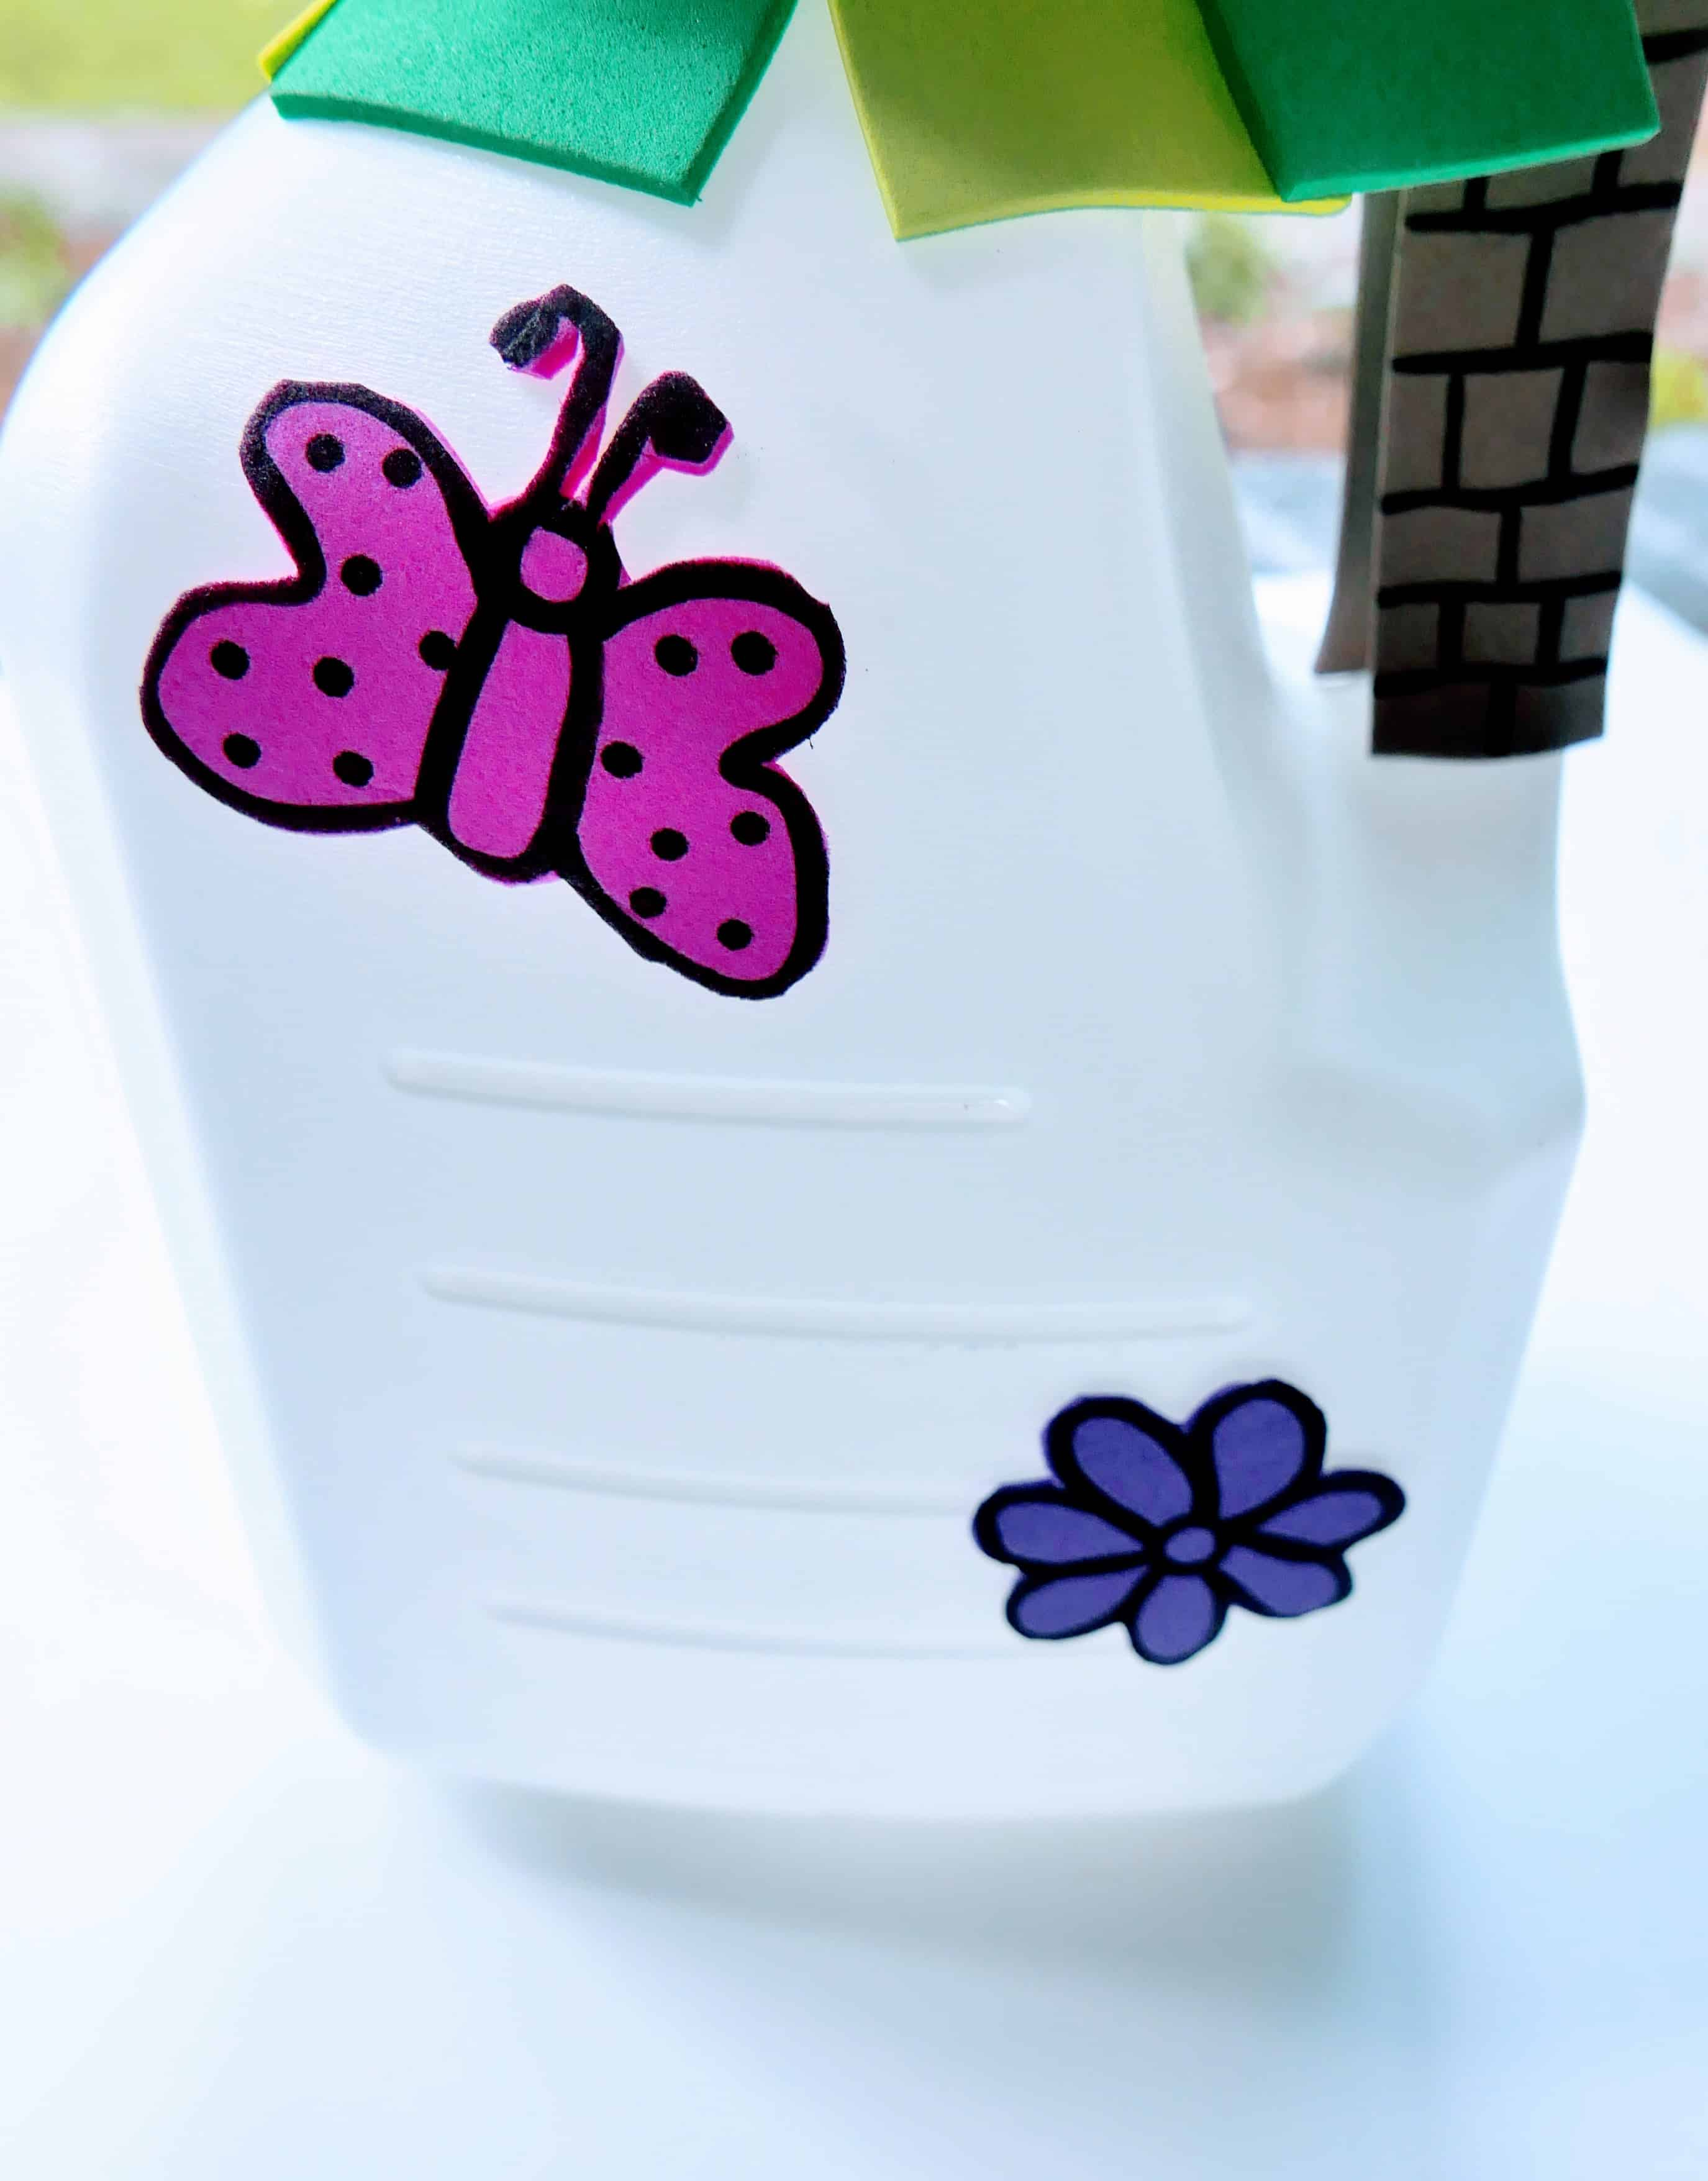 Milk jug with colorful decorations